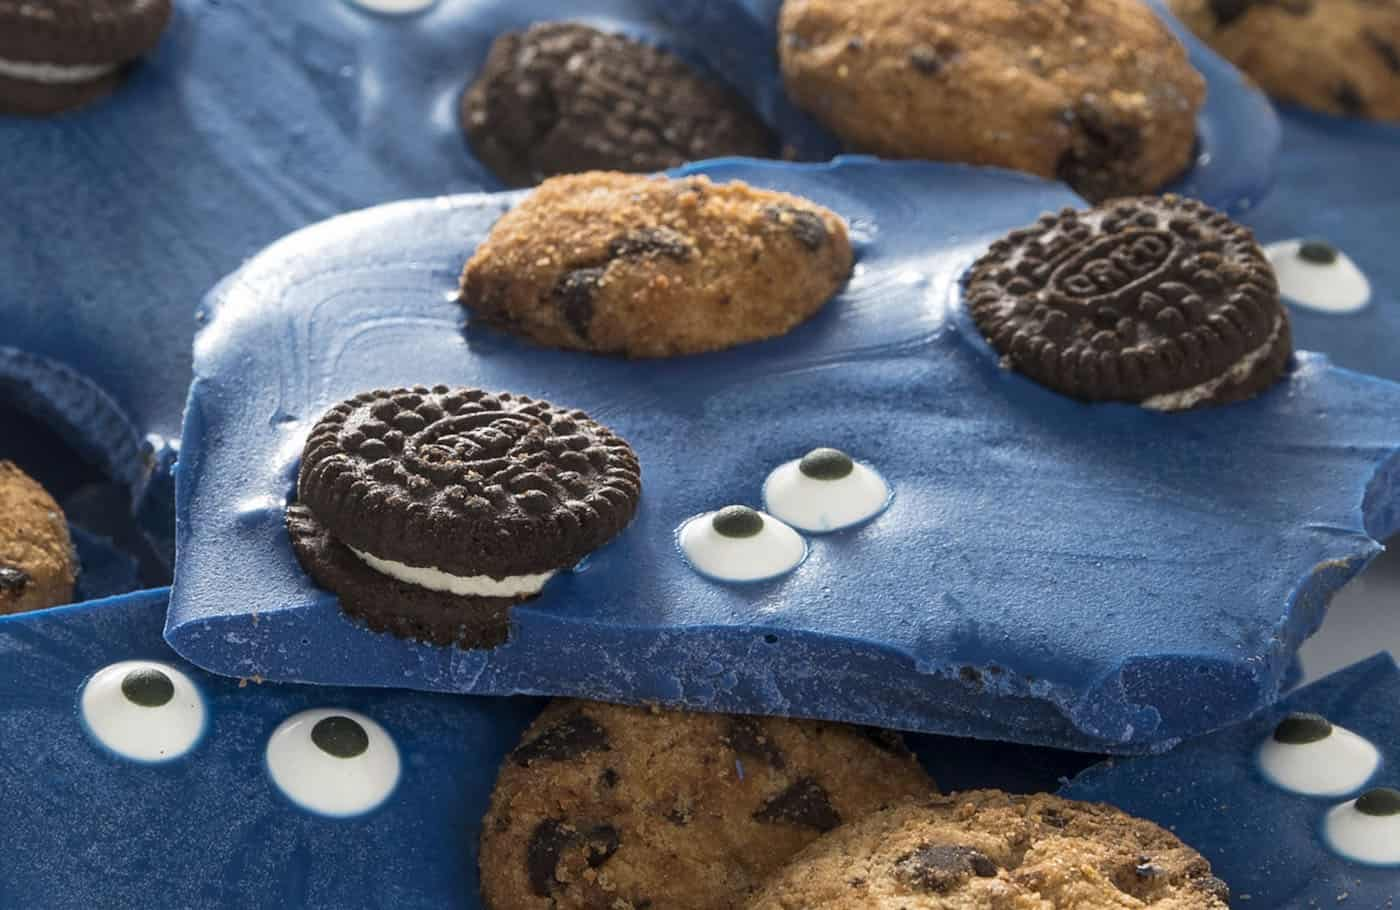 Are you a fan of Cookie Monster? Make this delicious candy bark loaded with chocolate chip cookies and Oreos. SO easy and fun for parties. Only 3 or 4 ingredients!